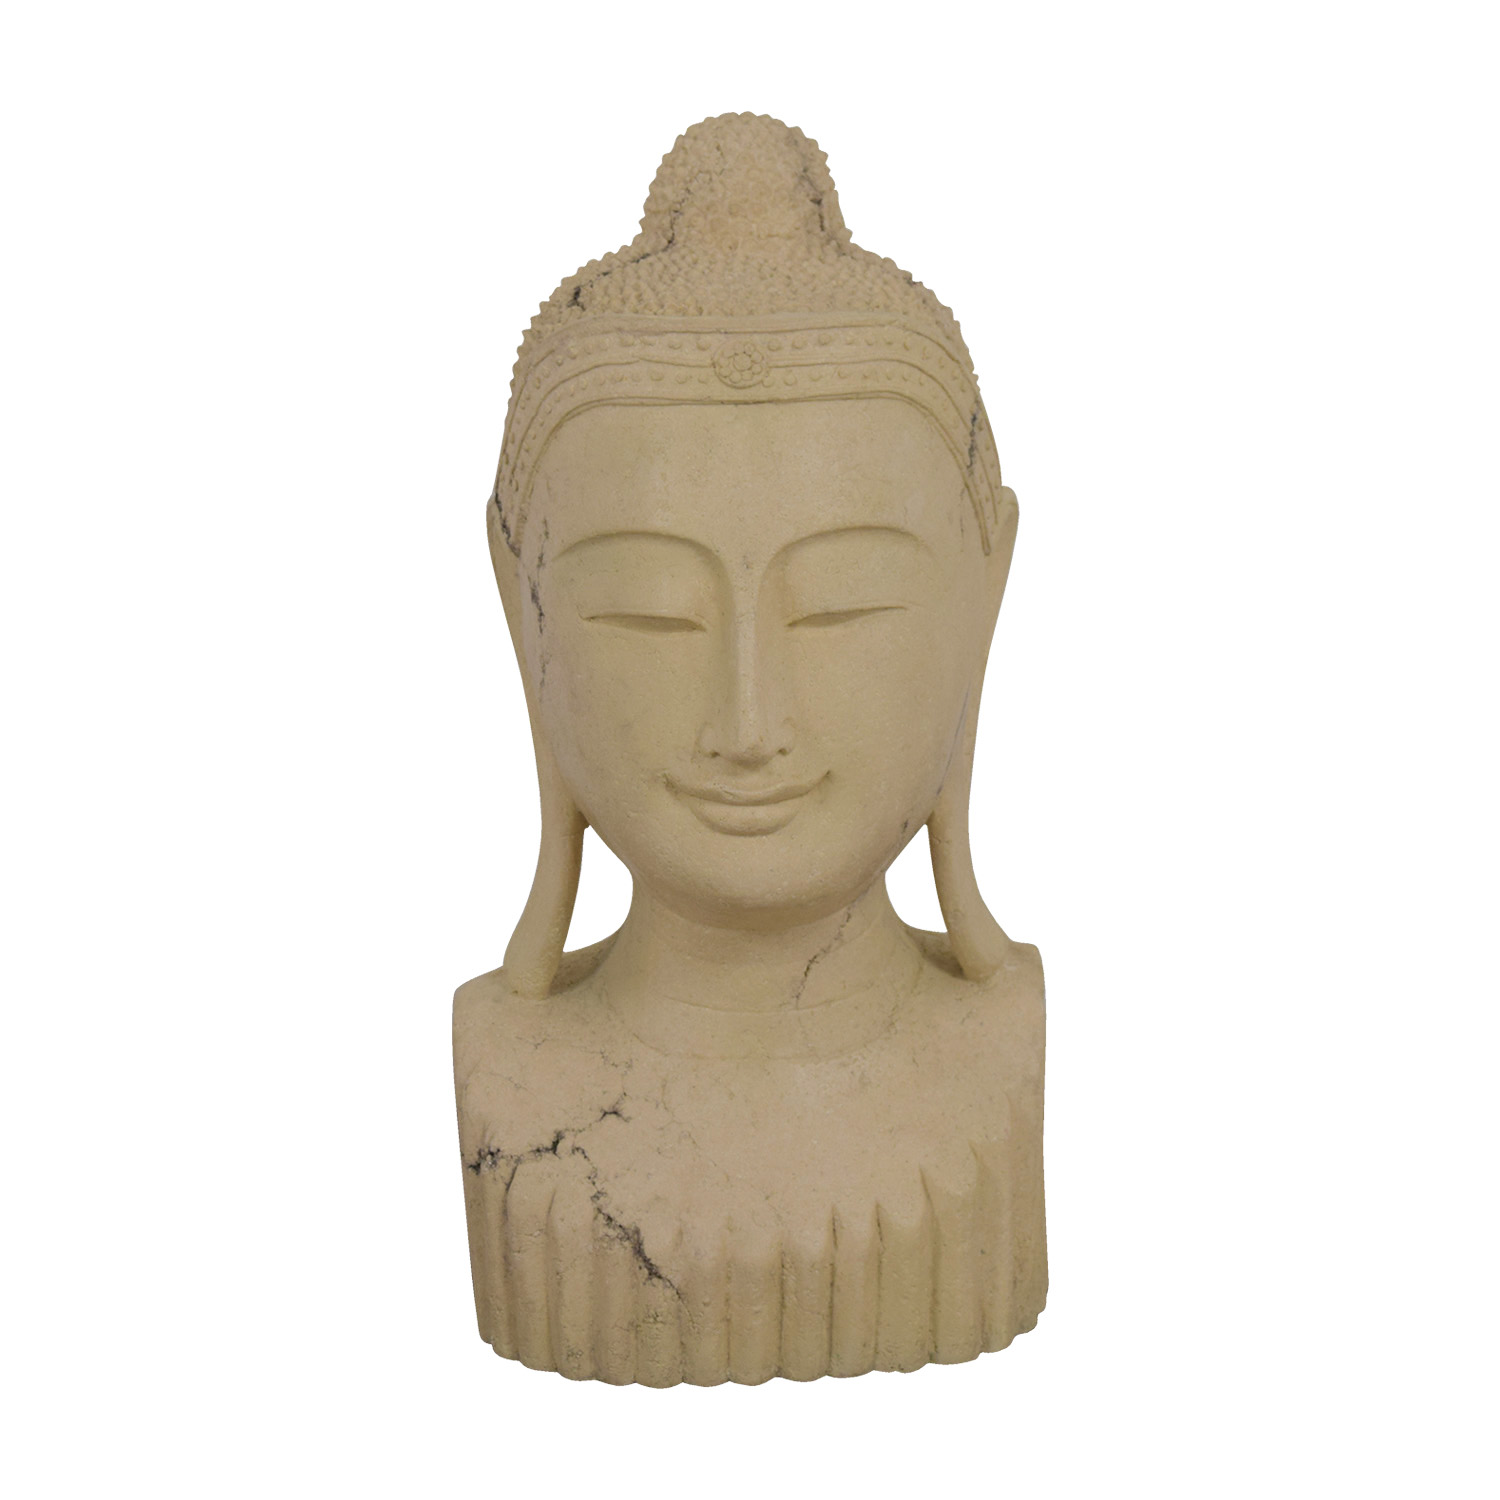 Decorative Budda Bust Decorative Accents